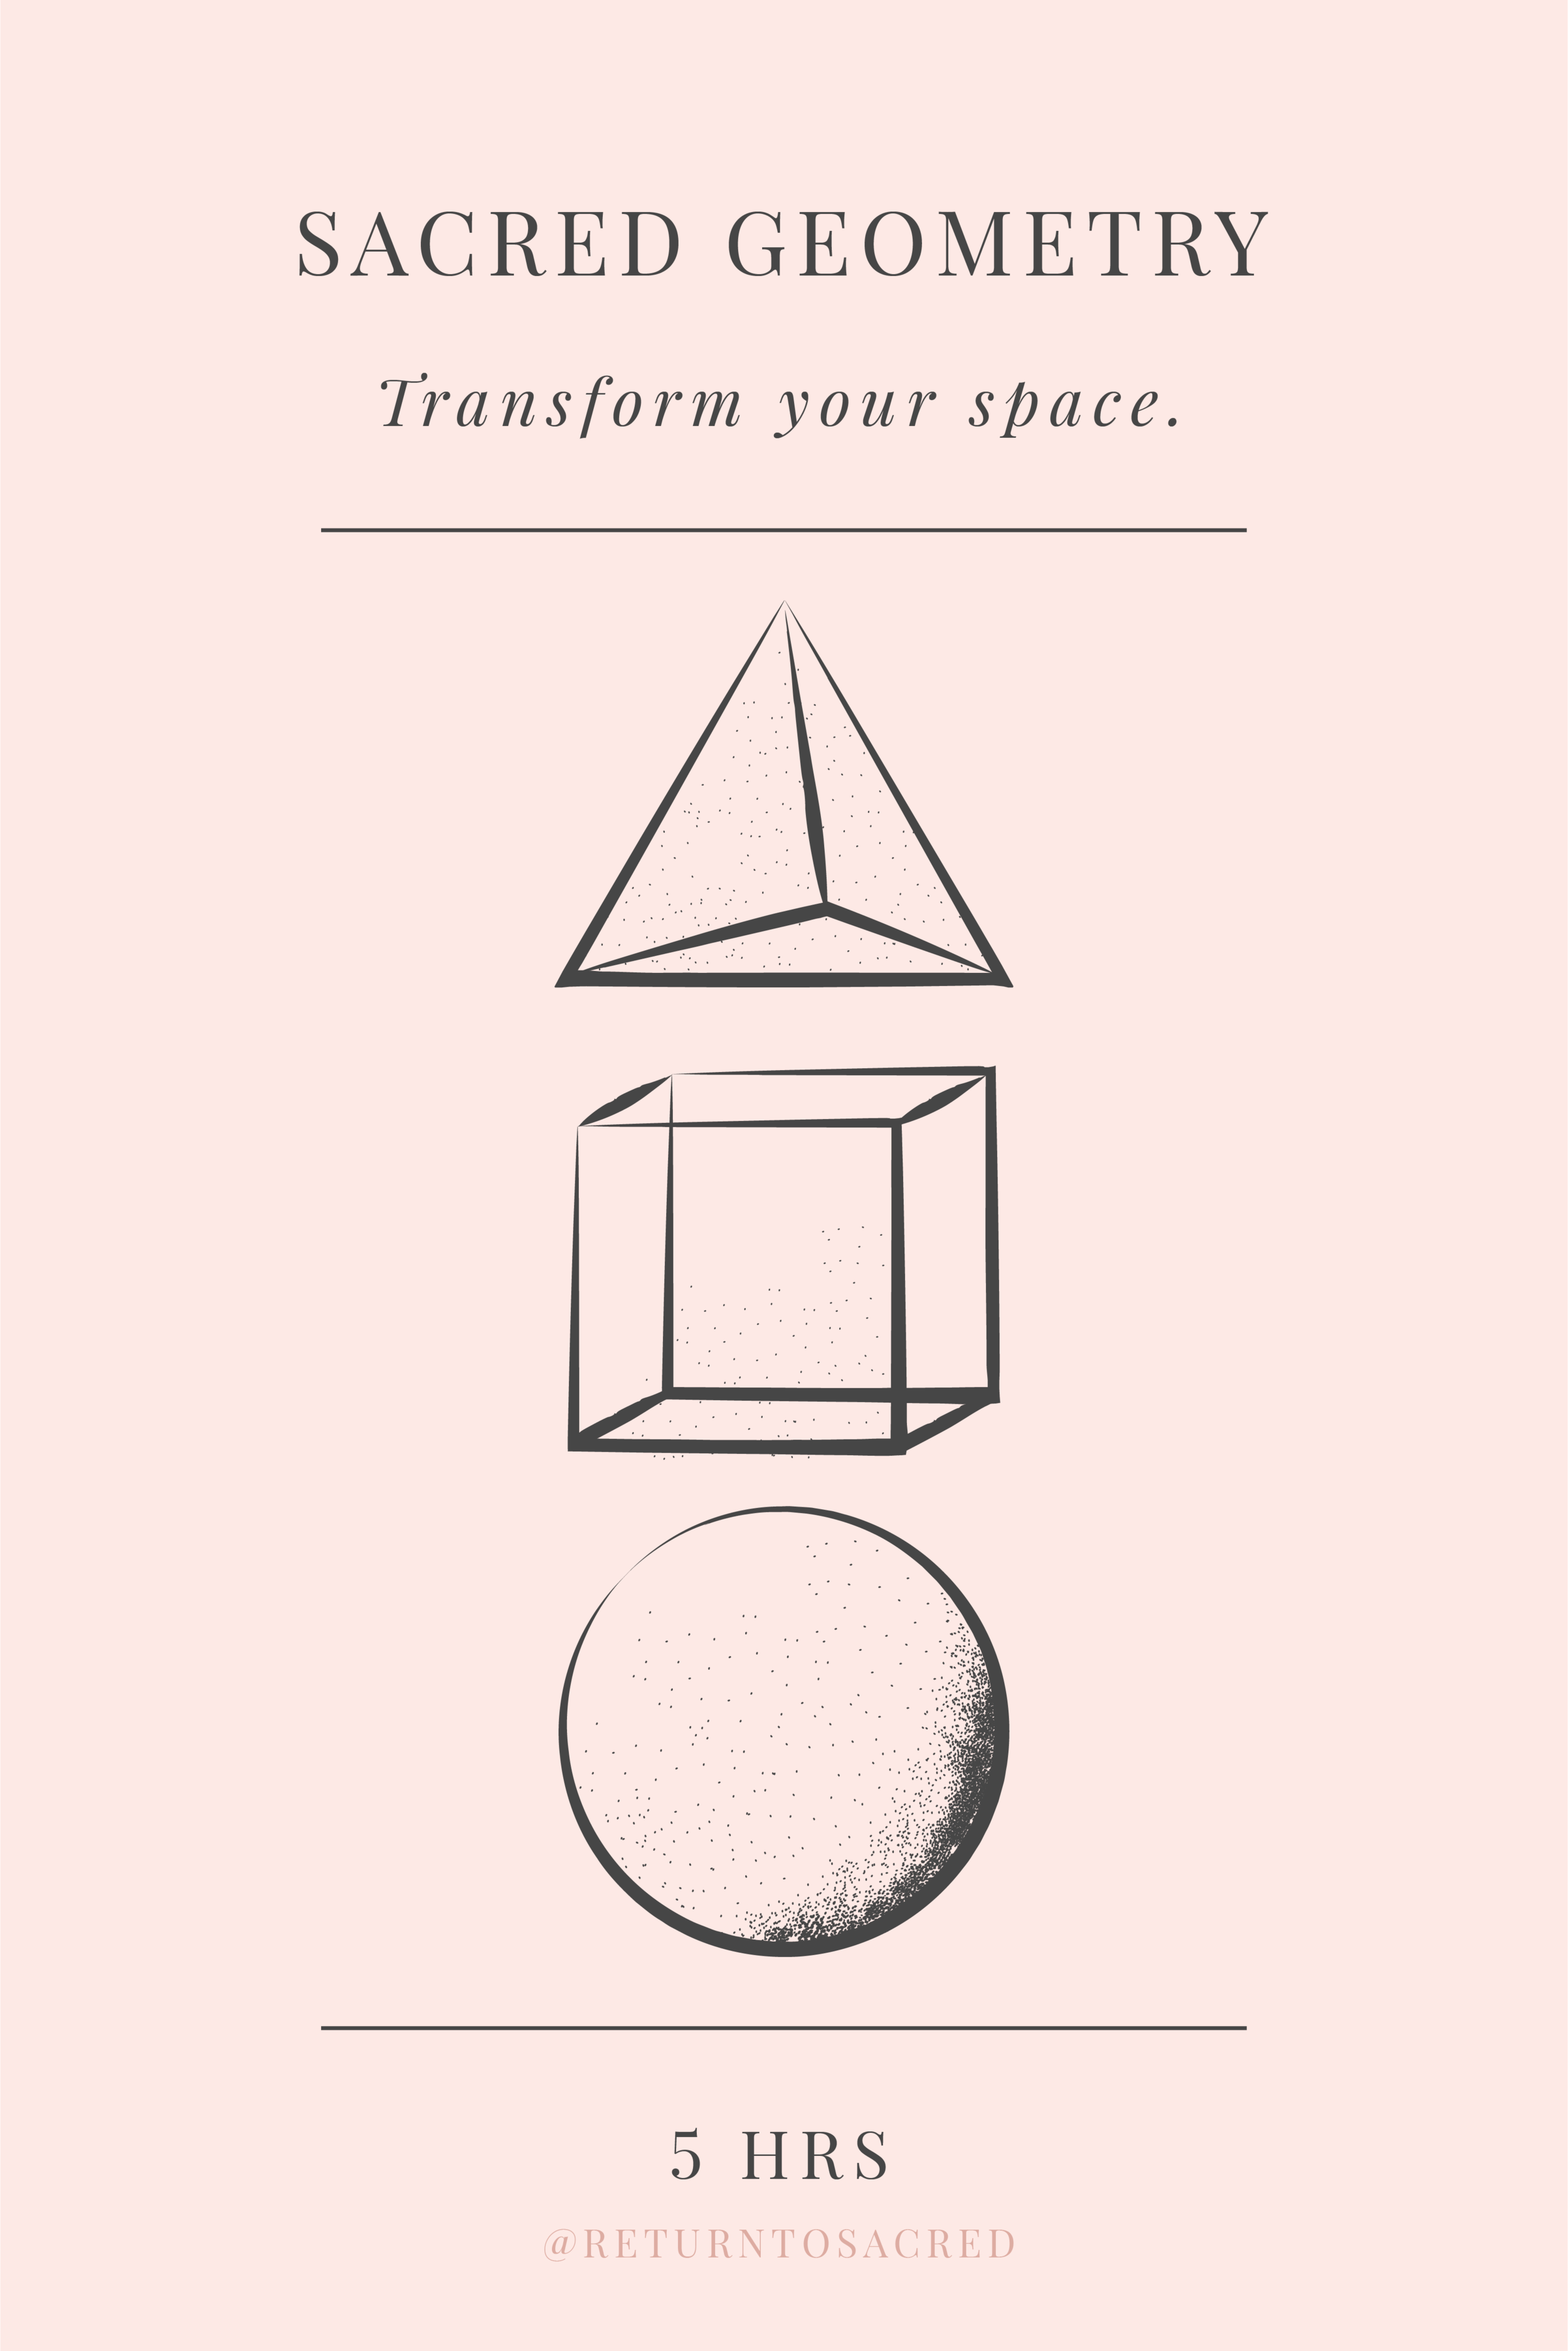 Sacred-Geometry-onlycard.png